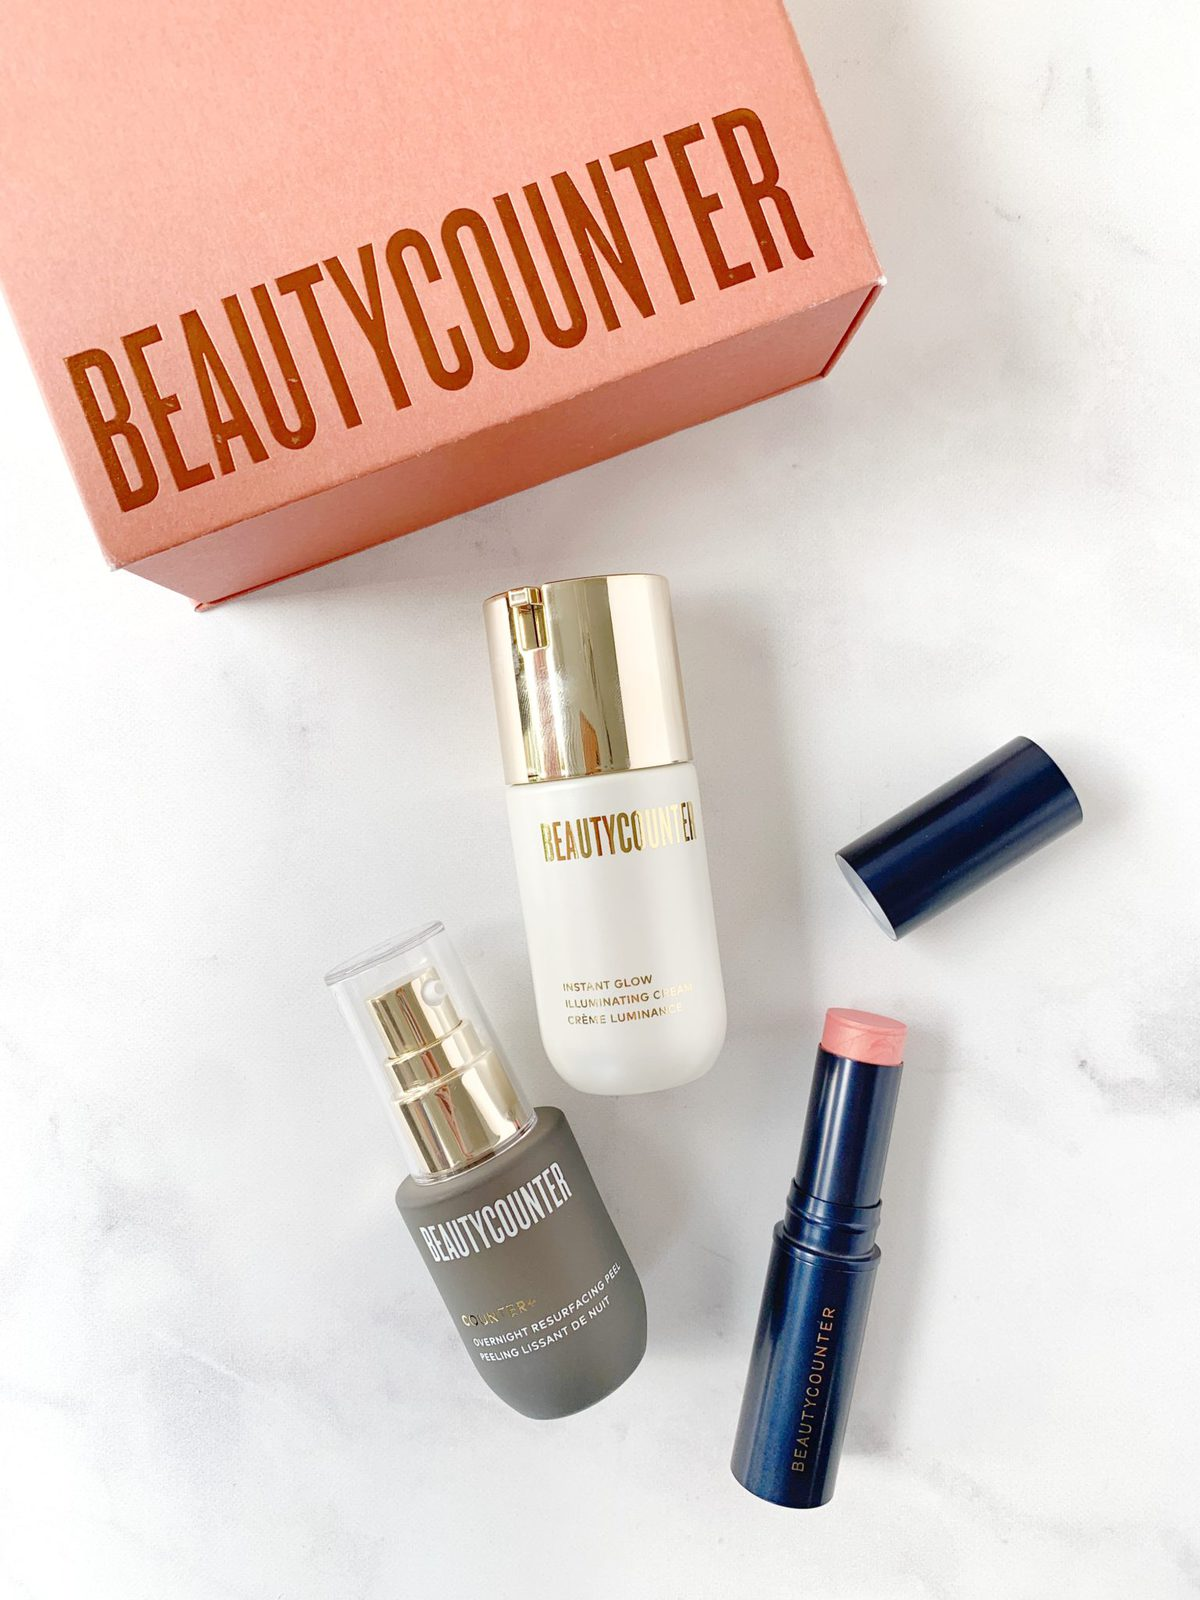 2019 Beautycounter Holiday Collection - Glow Getters Trio